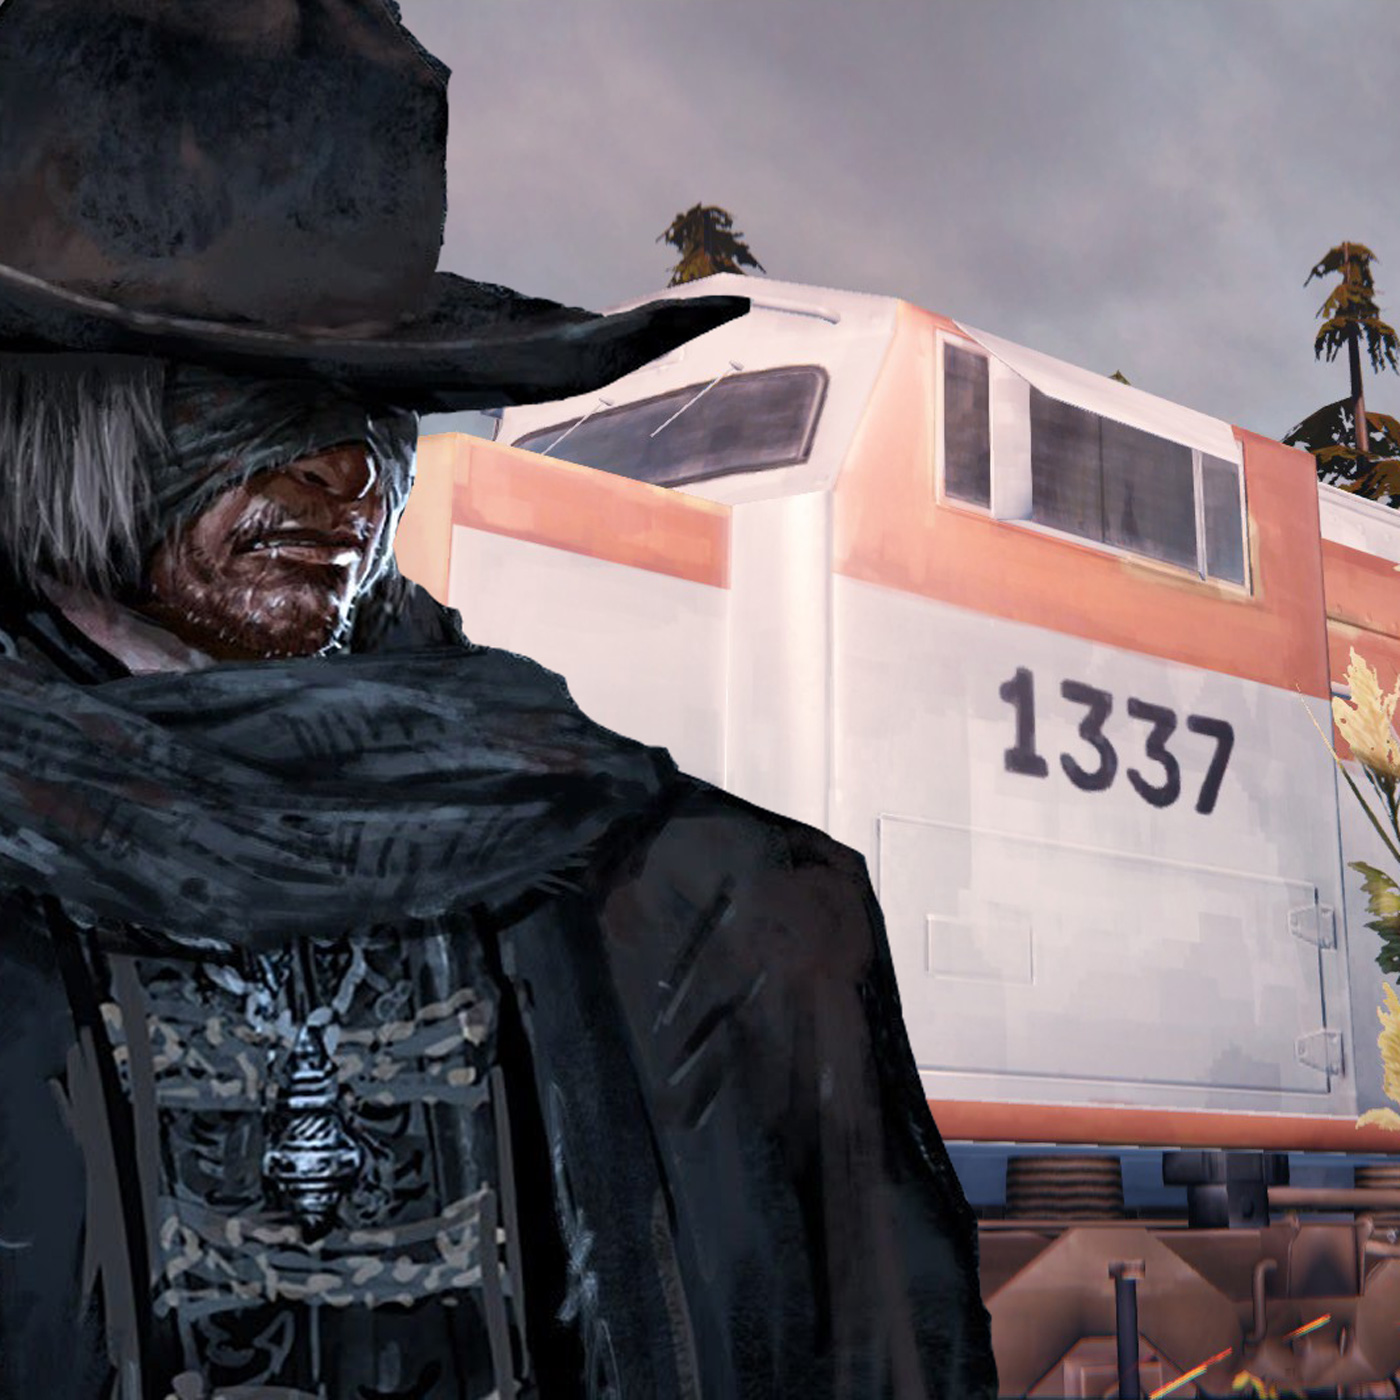 Episode 151 - Bloodborne Aboard The L337 Train